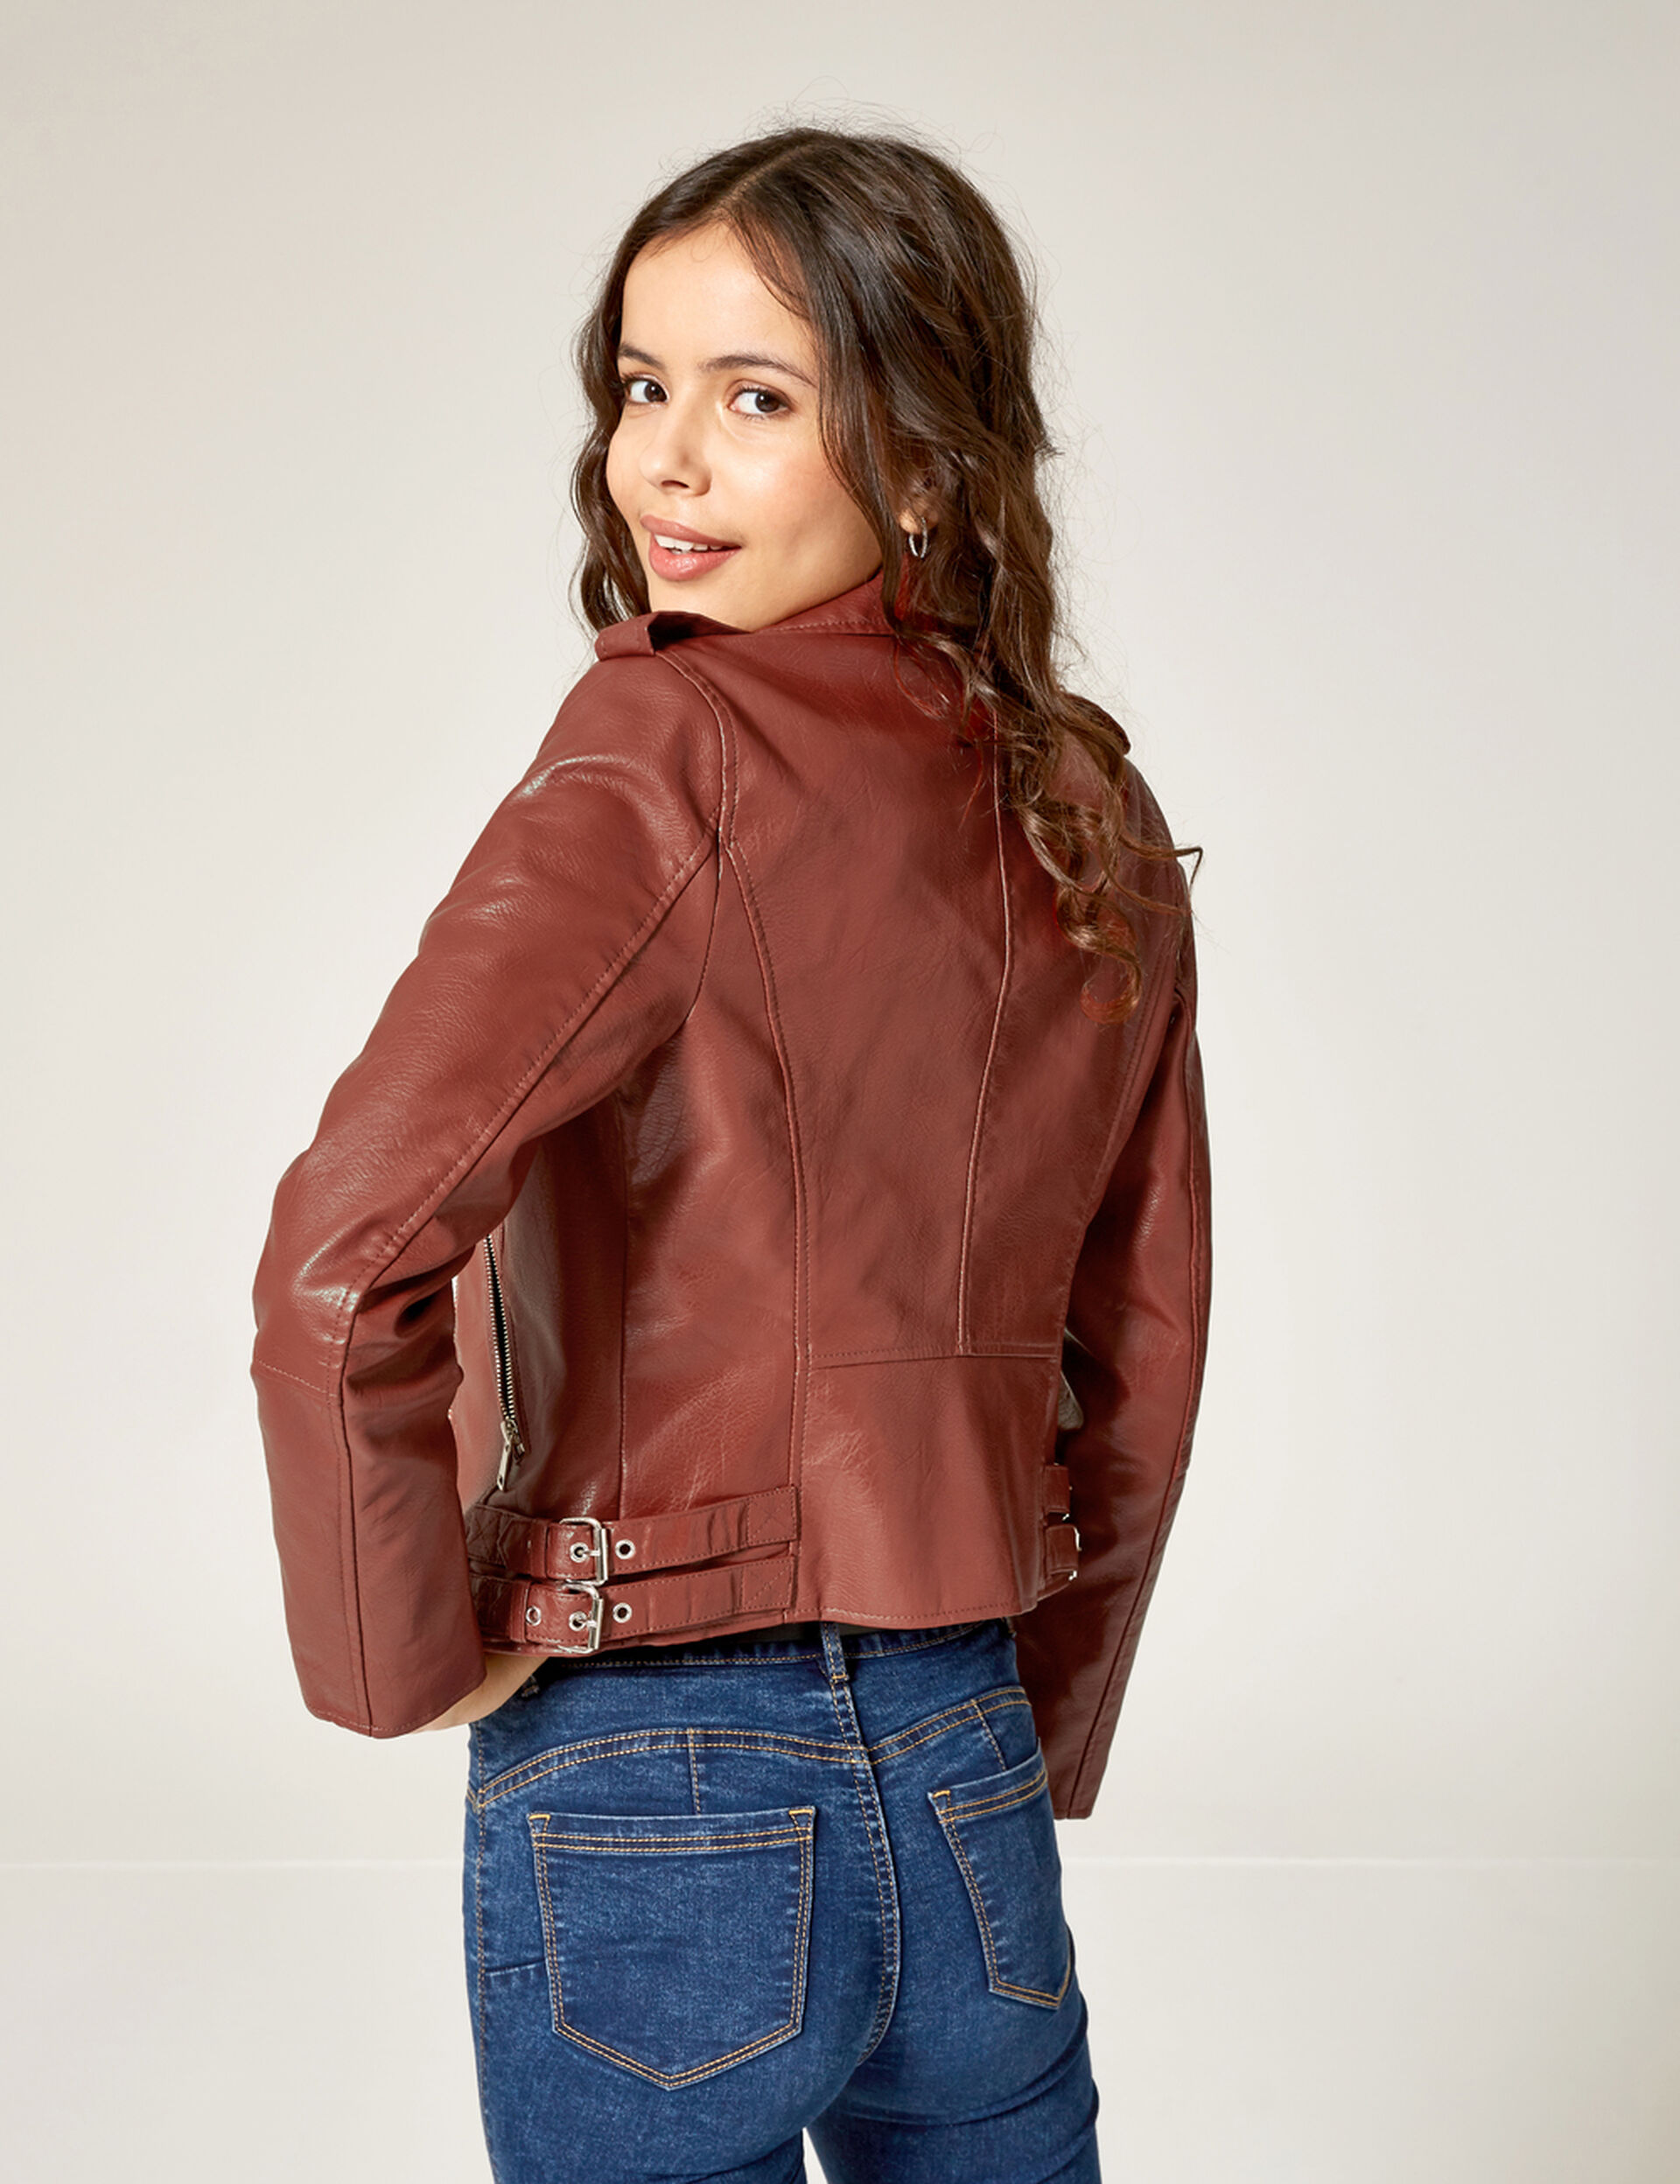 Rust-coloured biker jacket with pockets